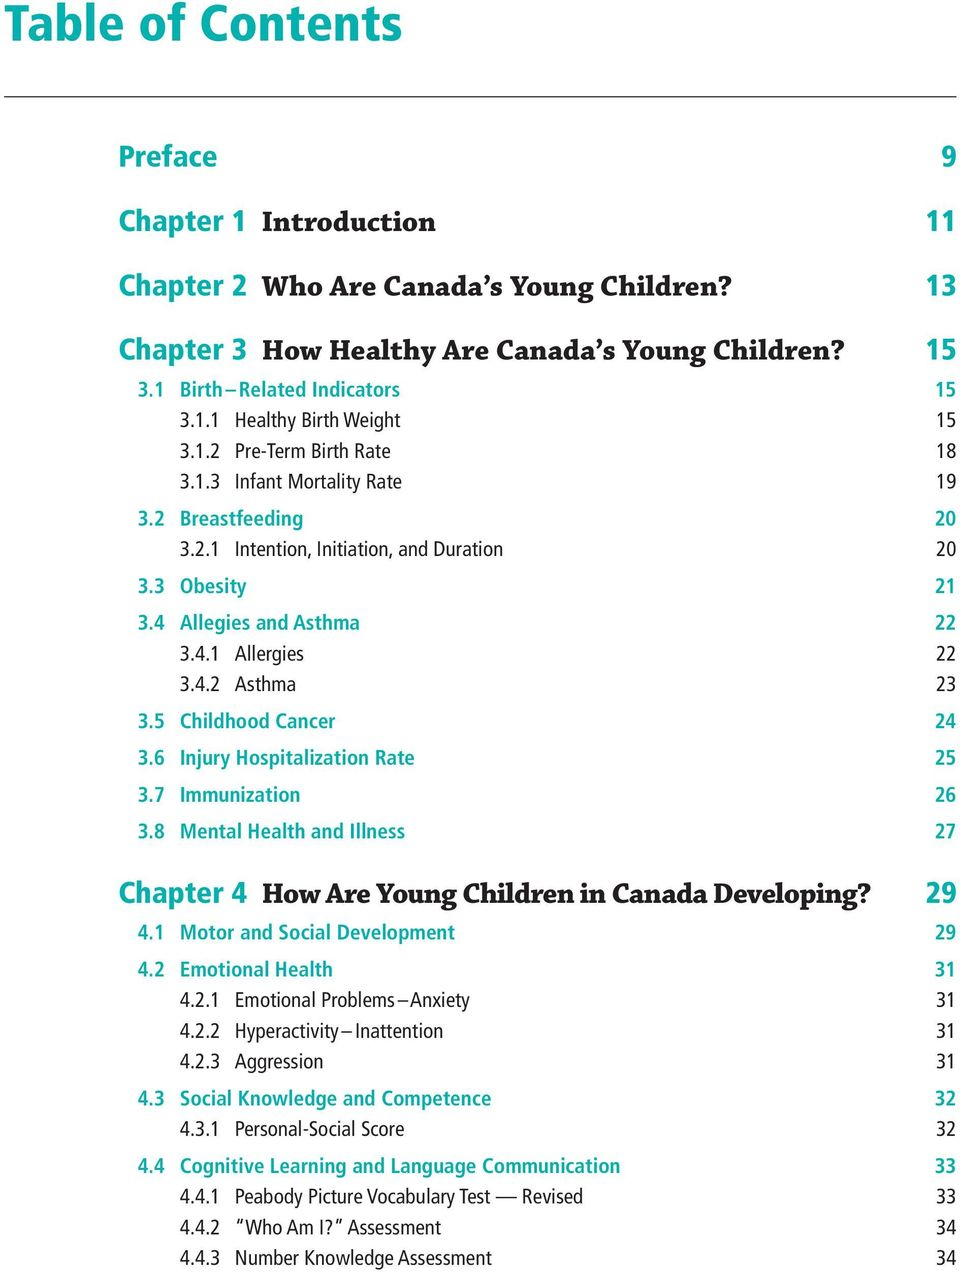 6 Injury Hospitalization Rate 3.7 Immunization 3.8 Mental Health and Illness Chapter 4 How Are Young Children in Canada Developing? 4.1 Motor and Social Development 4.2 Emotional Health 4.2.1 Emotional Problems Anxiety 4.